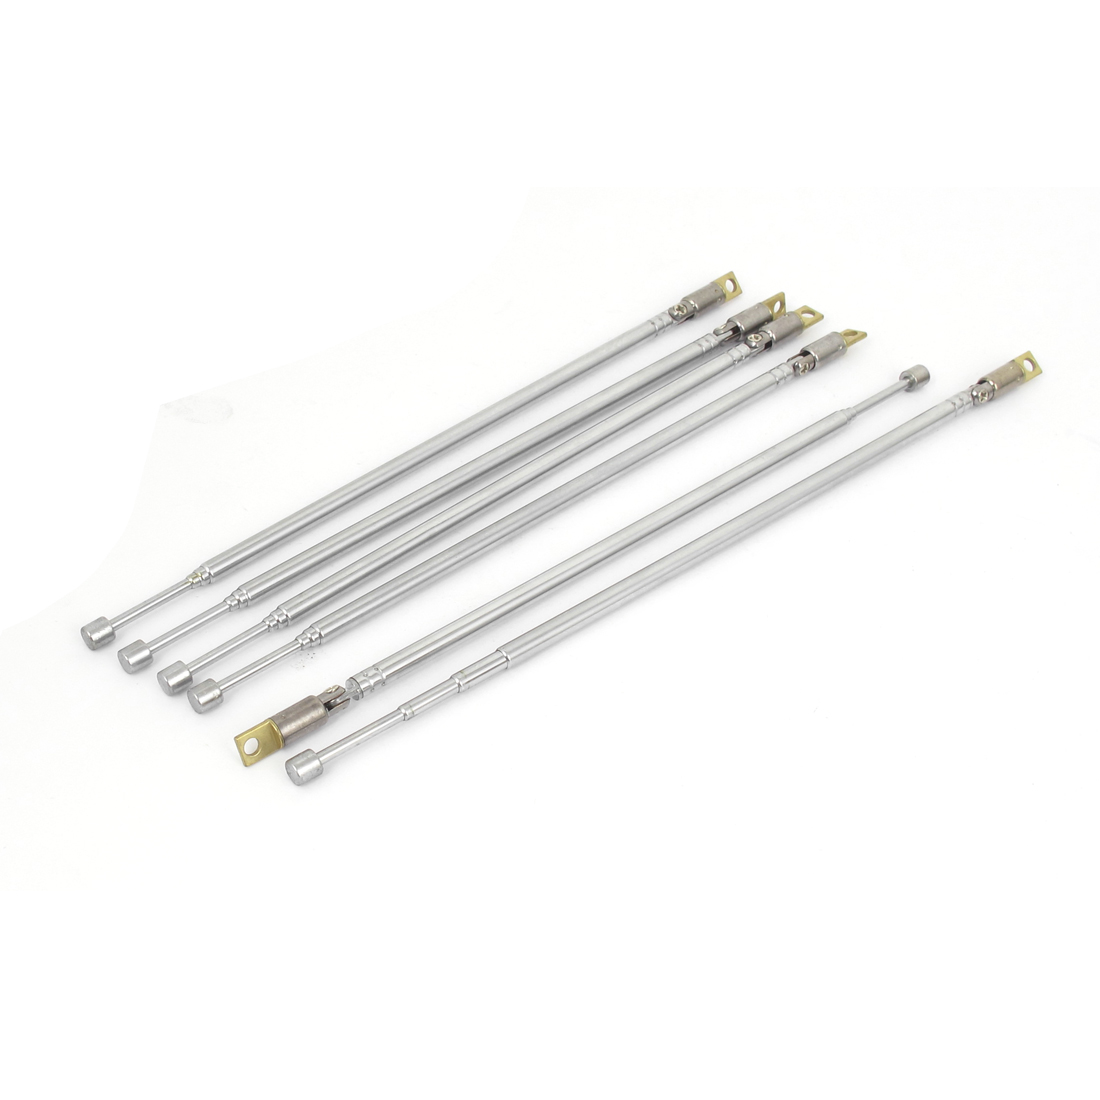 "6pcs 600mm 23.6"" Long Rod 4 Sections Telescopic RC TV Control Antenna Aerial Mast 360 Degree"